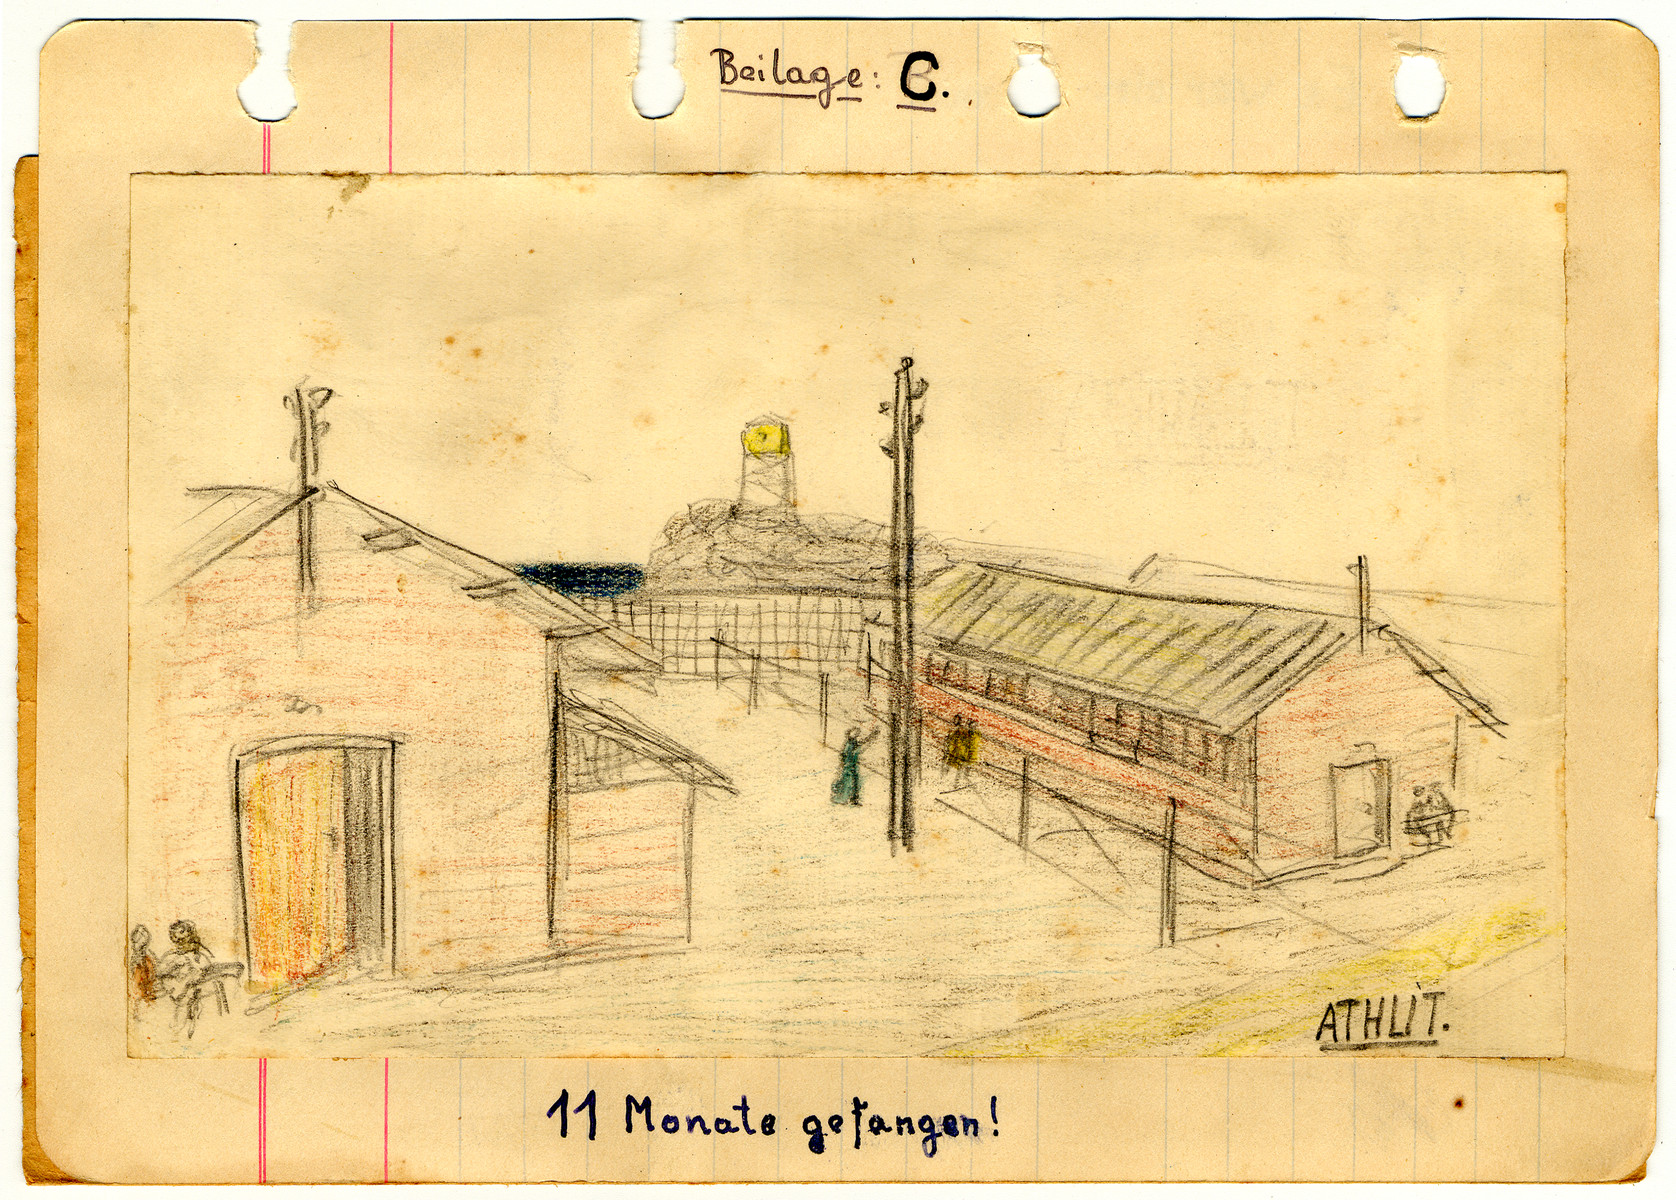 Illustrated page from the diary of Egon Weiss (probably drawn by a friend) showing the Athlit internment camp which he compiled during and immediately after his detention in the camp.